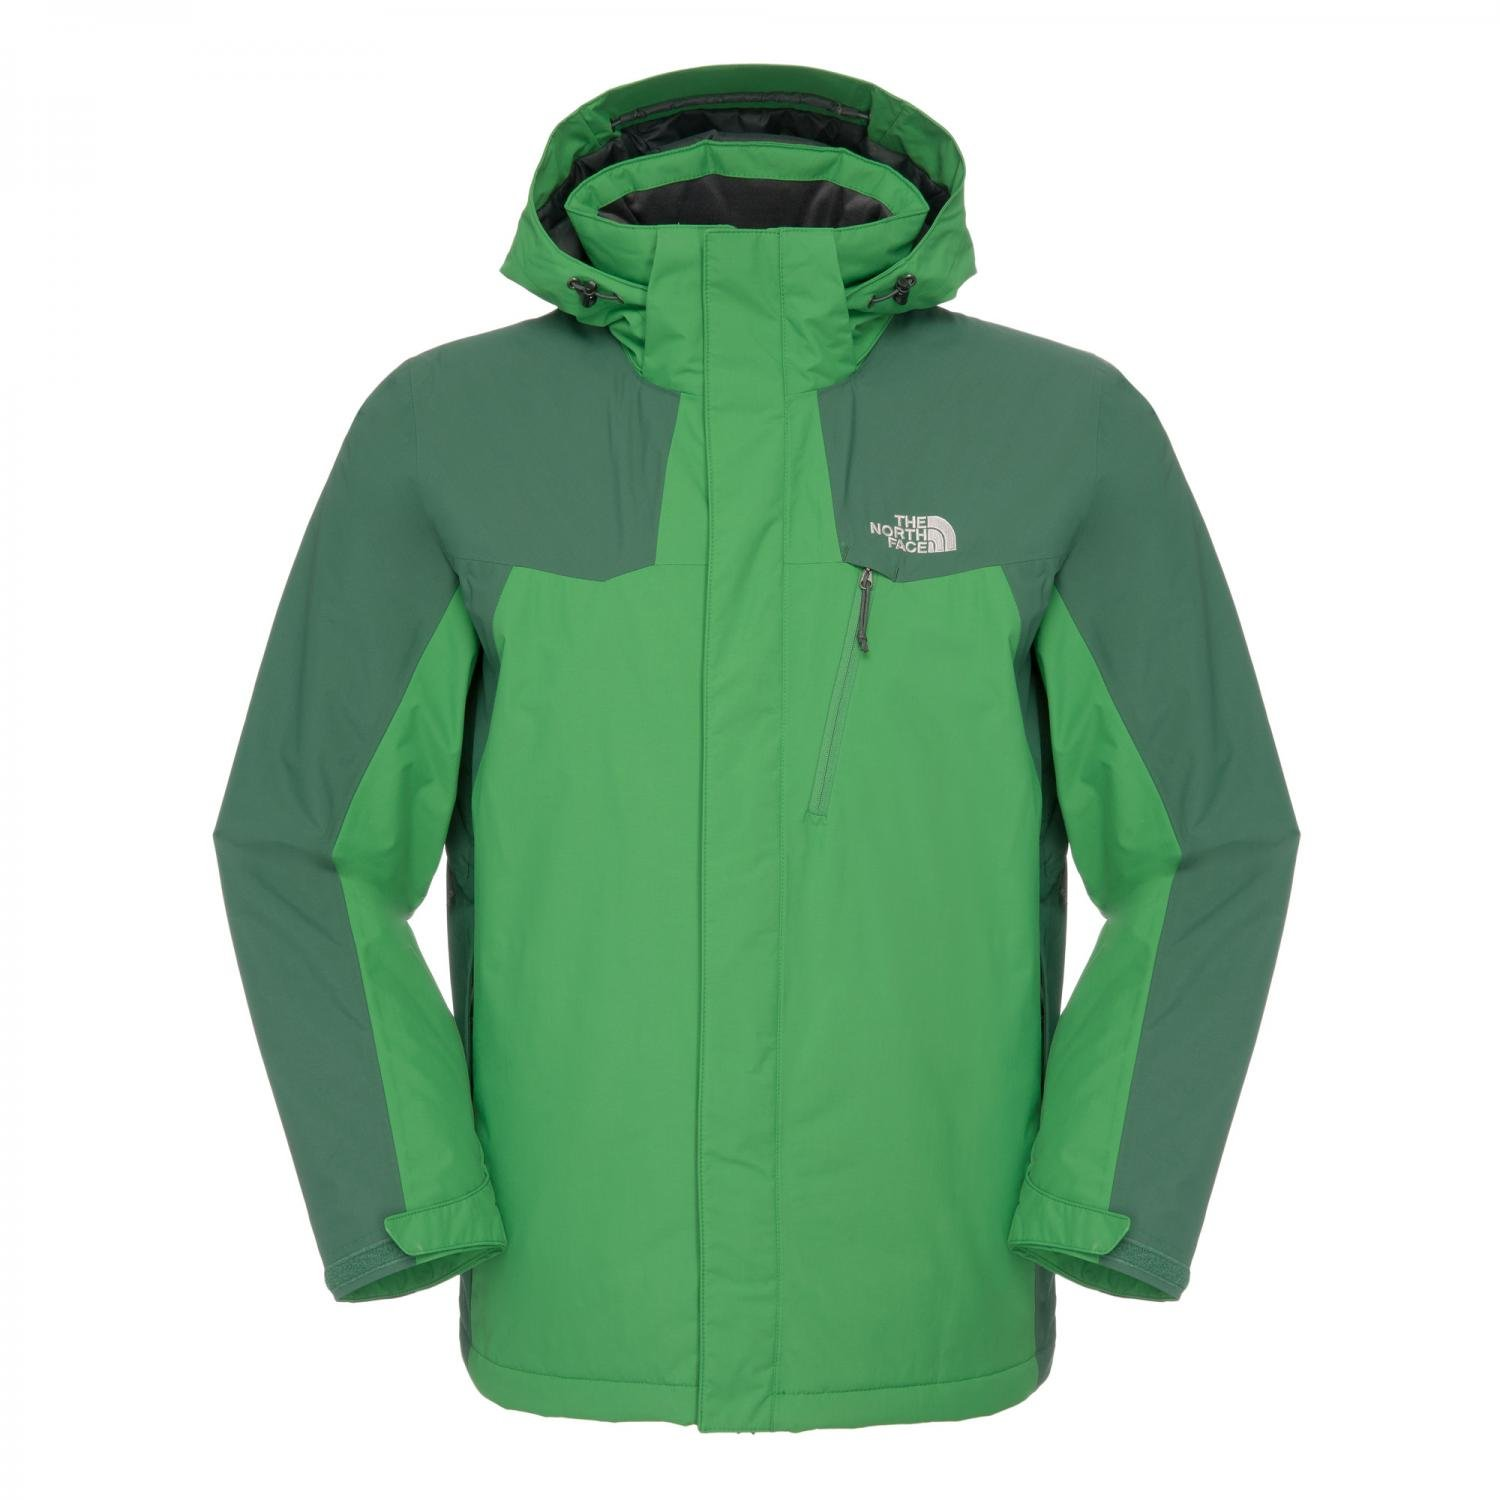 The North Face Herren Jacke Inlux Insulated A13P online kaufen